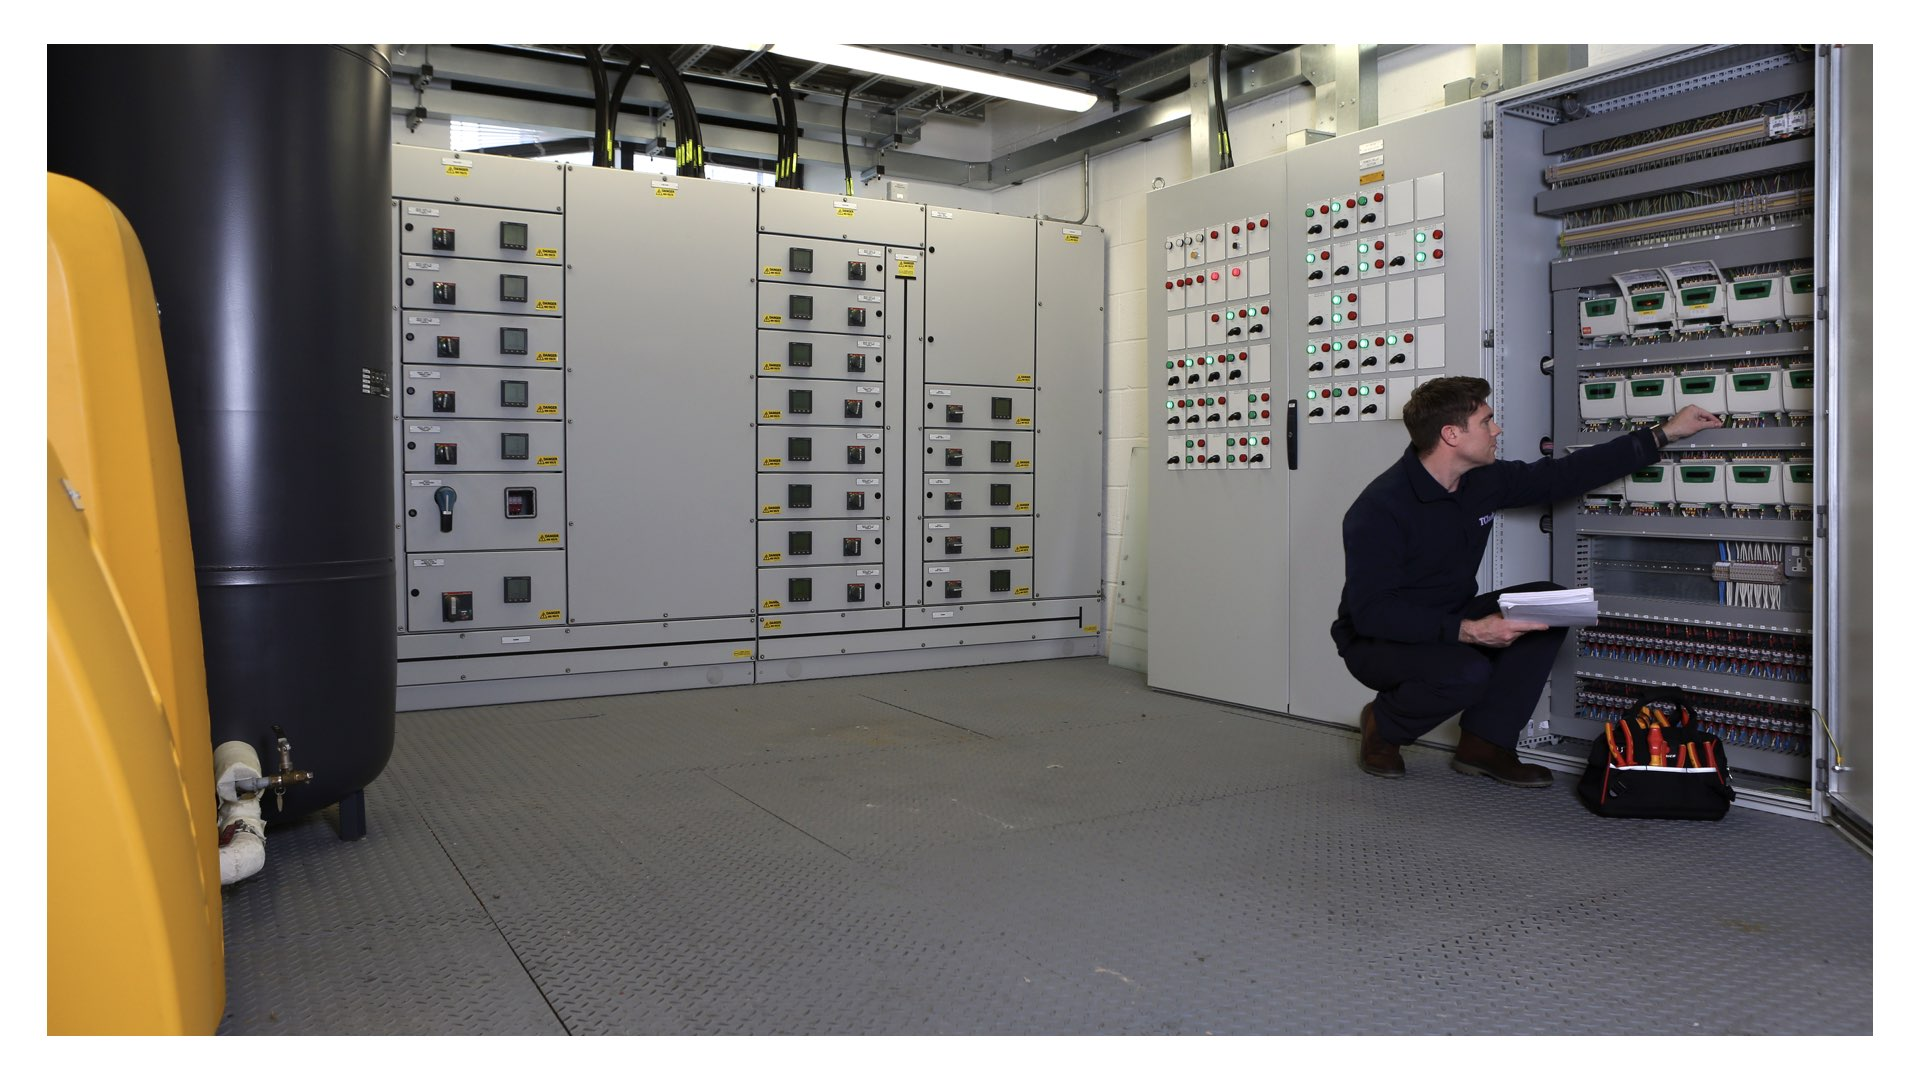 TClarke offers specialist M&E FM services 24/7 nationwide